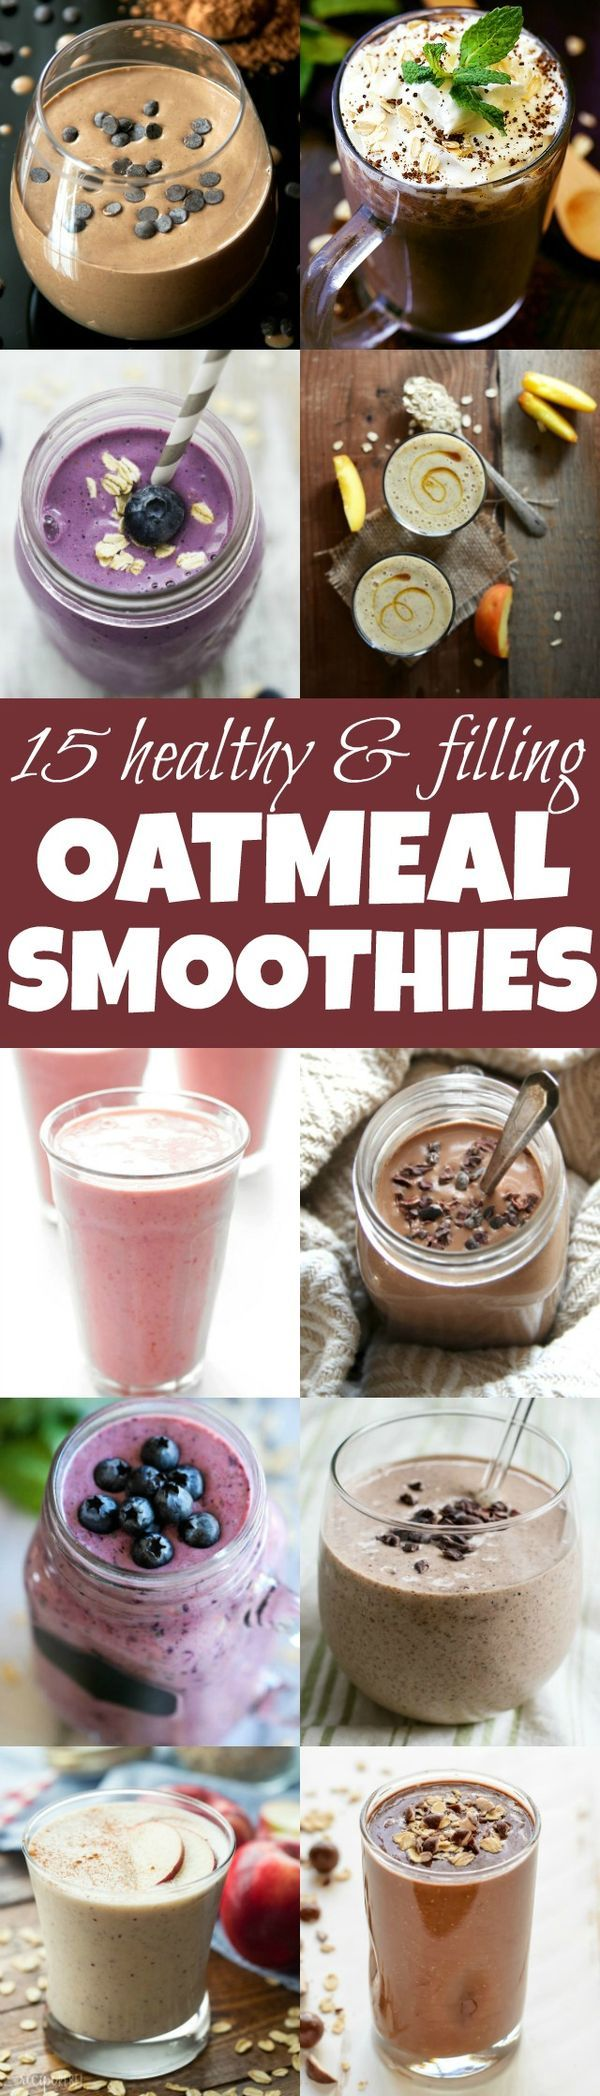 Add some extra staying power and nutrition to your smoothies with these healthy oatmeal smoothie recipes! With so many smoothies to choose from, you can make new one in your kitchen every day for the next two weeks!